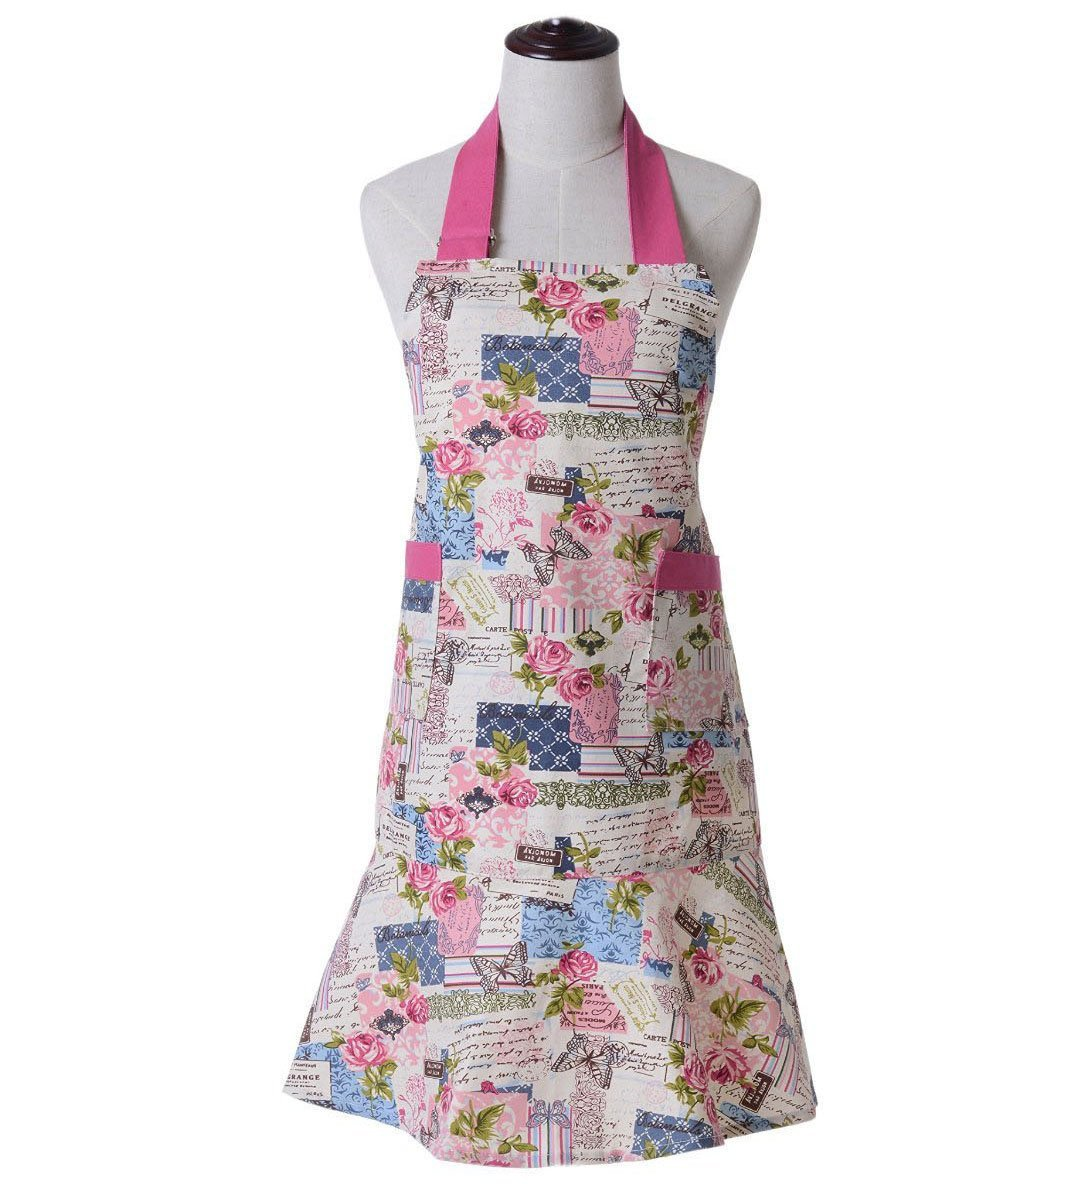 apron-for-christmas-gift